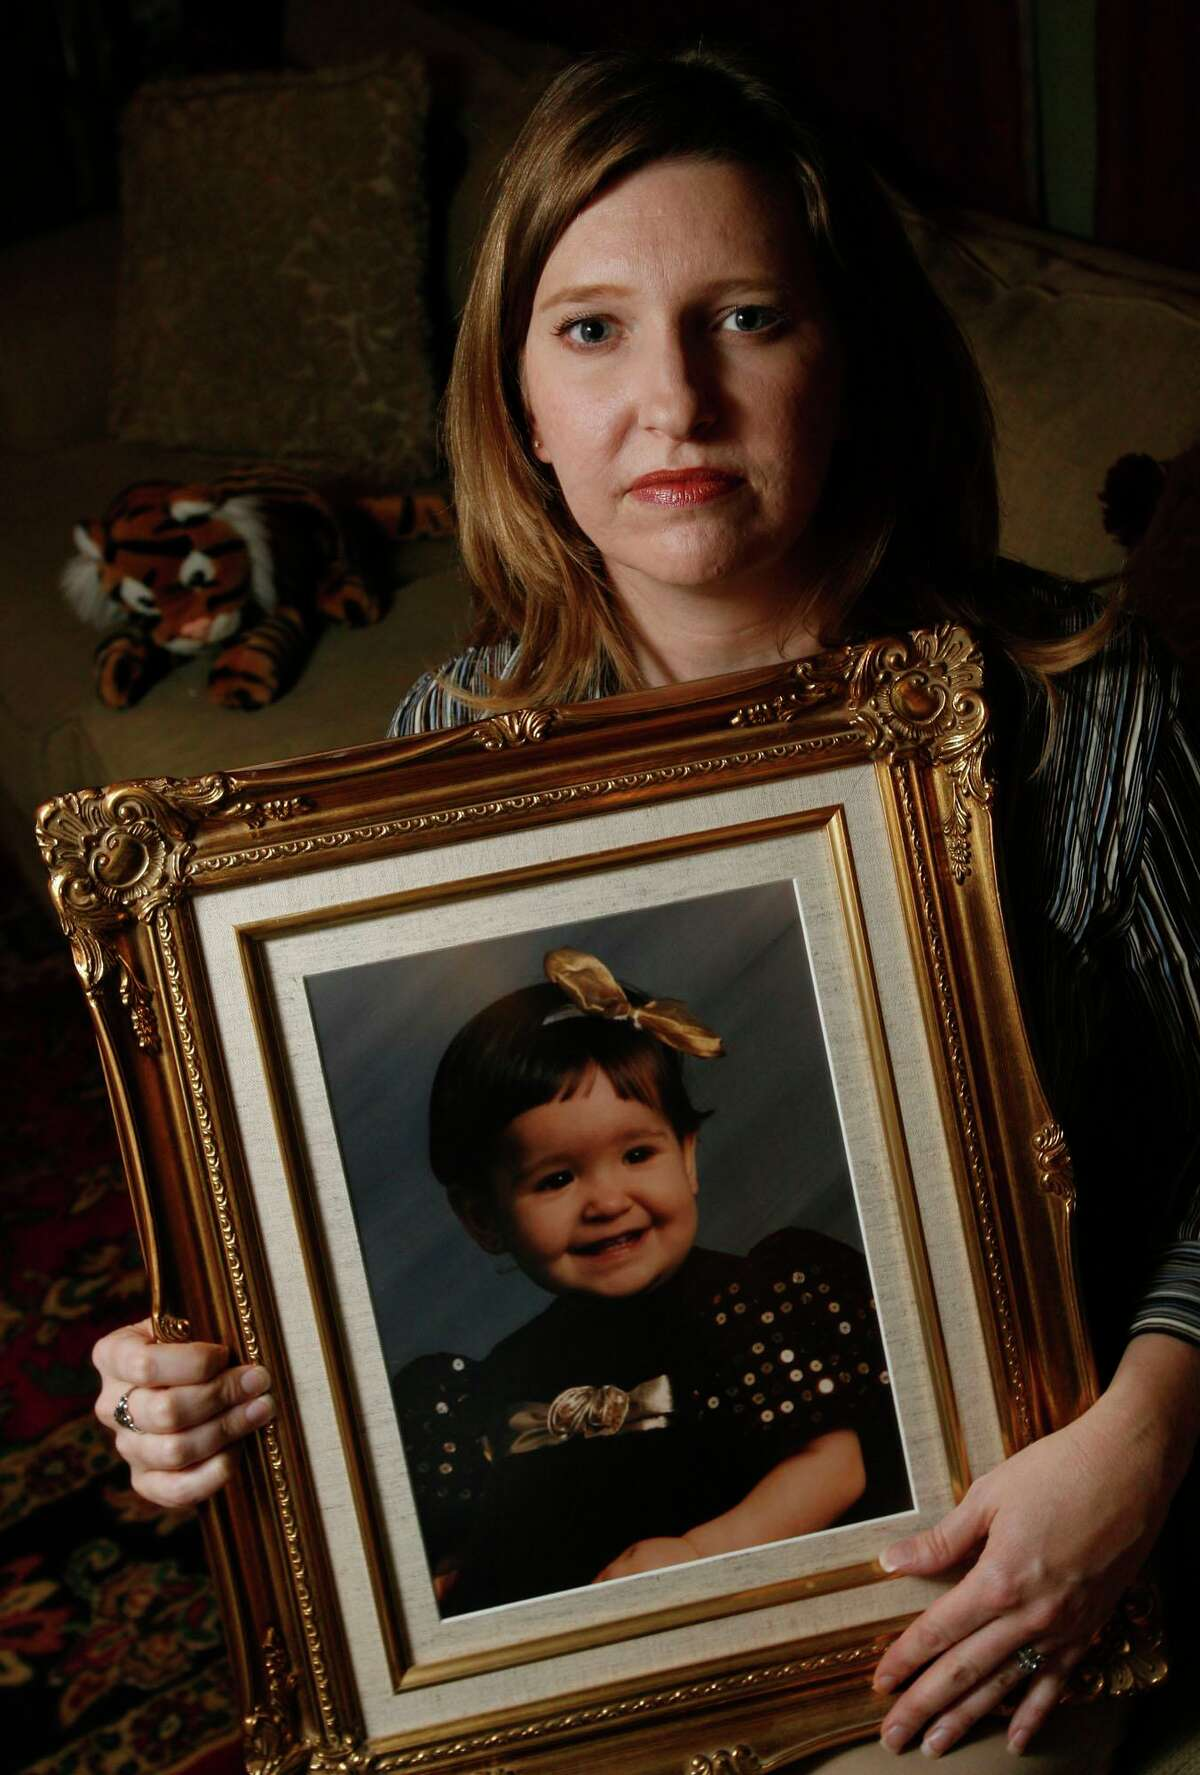 Deana Hebert holds a photo of her daughter, 18-month-old daughter Bianca Lozano, in 2009. Texas Center for the Missing helped locate her in Mexico, 26 years after her father took her for a weekend visit in 1995 and never brought her back.